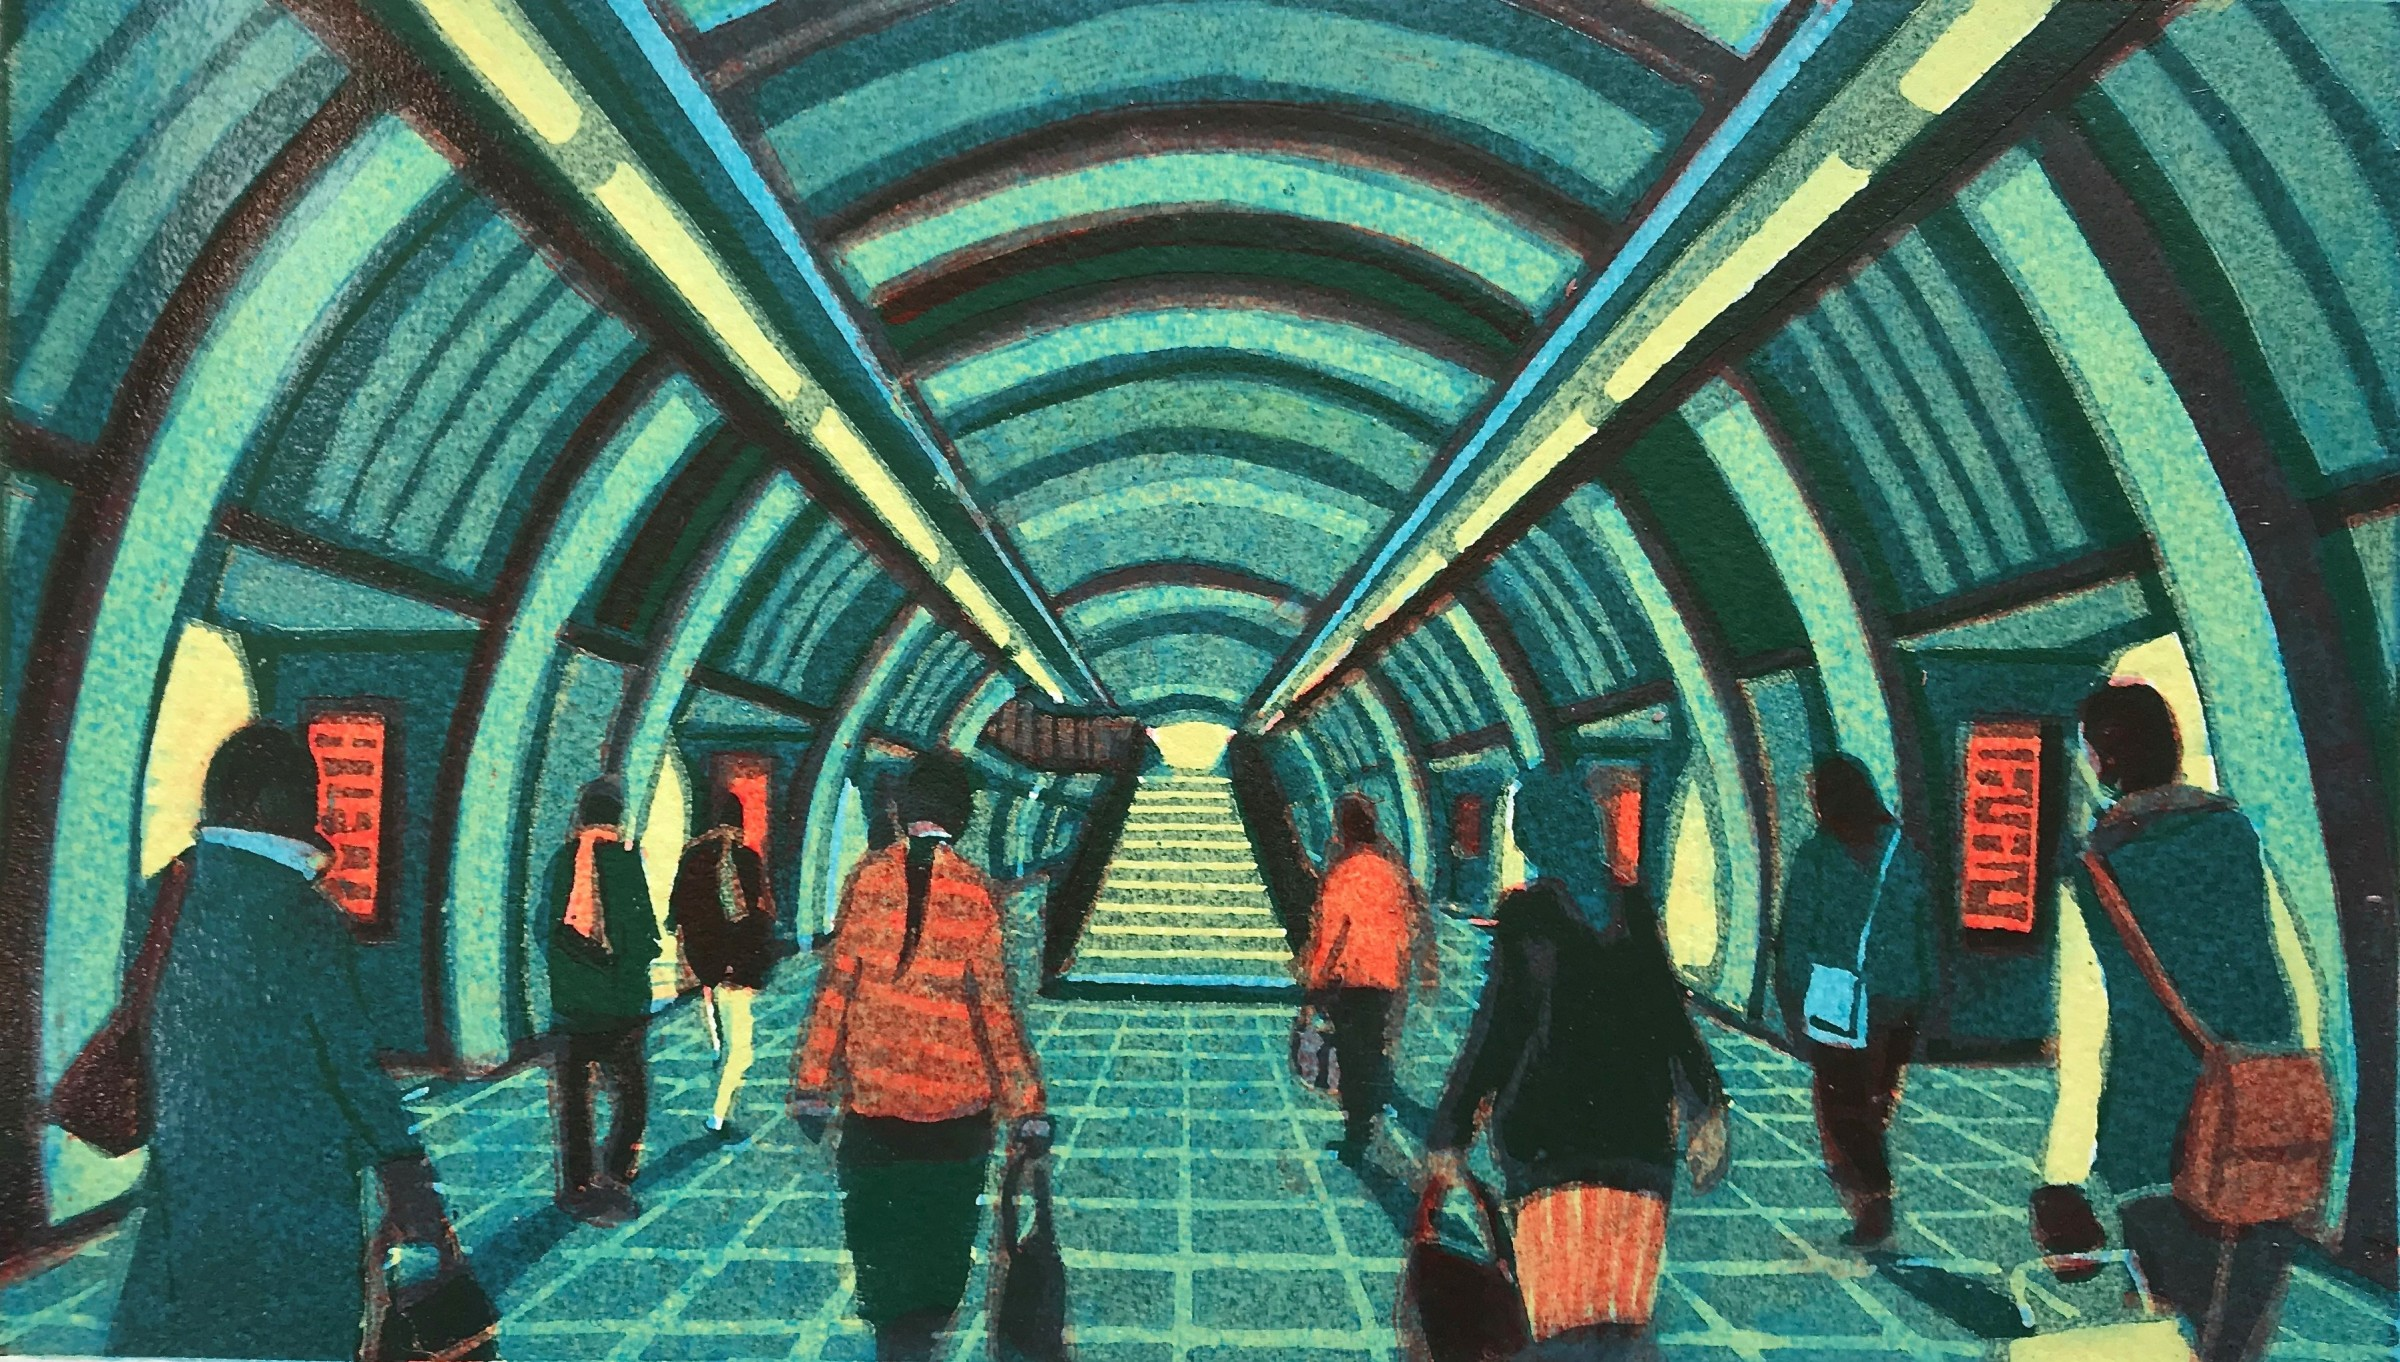 """<span class=""""link fancybox-details-link""""><a href=""""/exhibitions/11/works/image_standalone127/"""">View Detail Page</a></span><p>GAIL BRODHOLT RE</p><p></p><p><em>London Bridge Underground</em>, 2017</p><p>linocut</p><p>Inspired by Philip Thomas Langford Reeves RE</p><p></p><p>Part of the Print REbels Portfolio</p><p></p><p>""""<b>Philip Thomas Langford Reeves PPRSW RSA RE (1931-2017) </b>portrays the gritty smoky station of the '50s. Mine is contemporary, brighter, but more streamlined and hygienic. Reeves' figures are conformist, mine modernistically individual. Despite the temporal differences, basically we are the same; a metaphor for a changing London.""""</p><p></p><p></p>"""